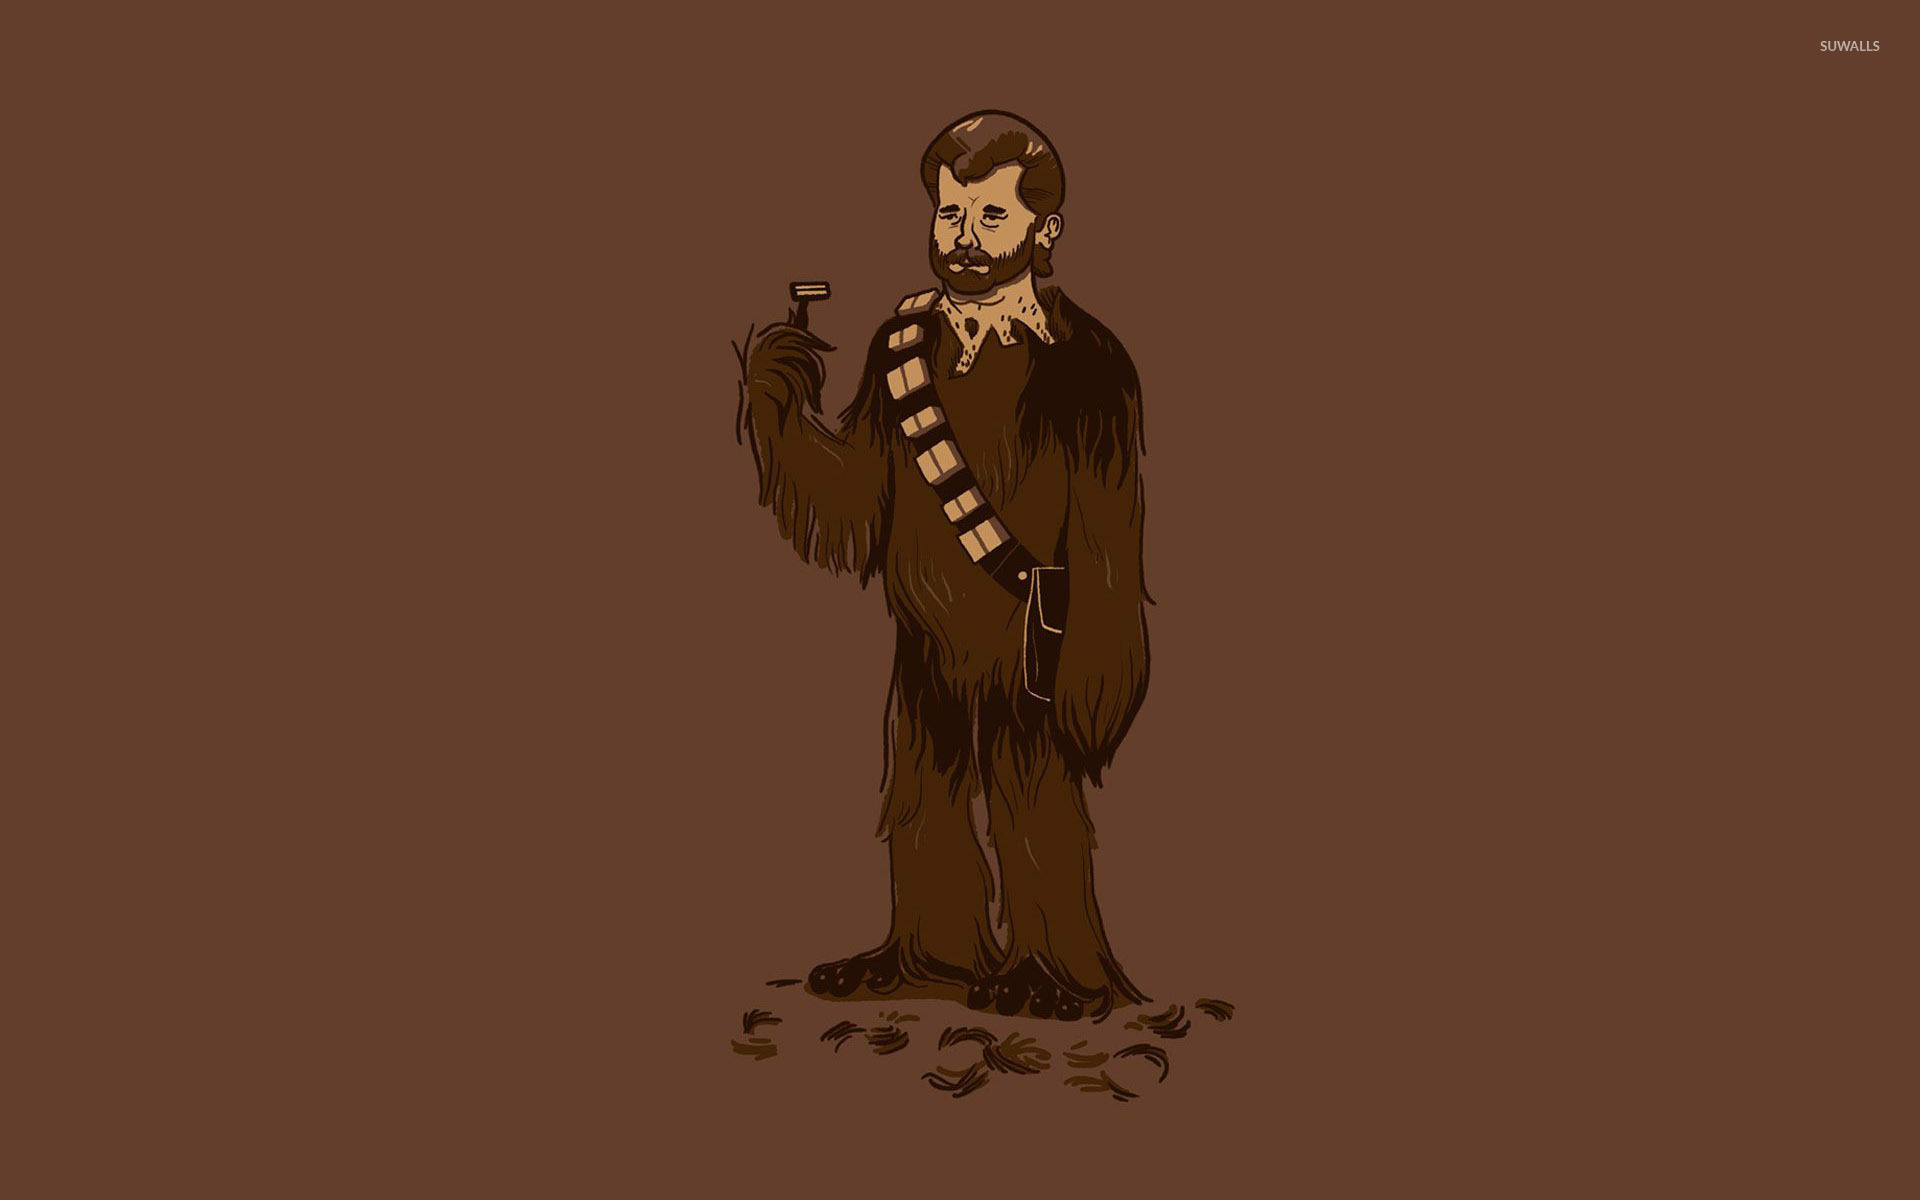 star wars chewbacca wallpaper - photo #19